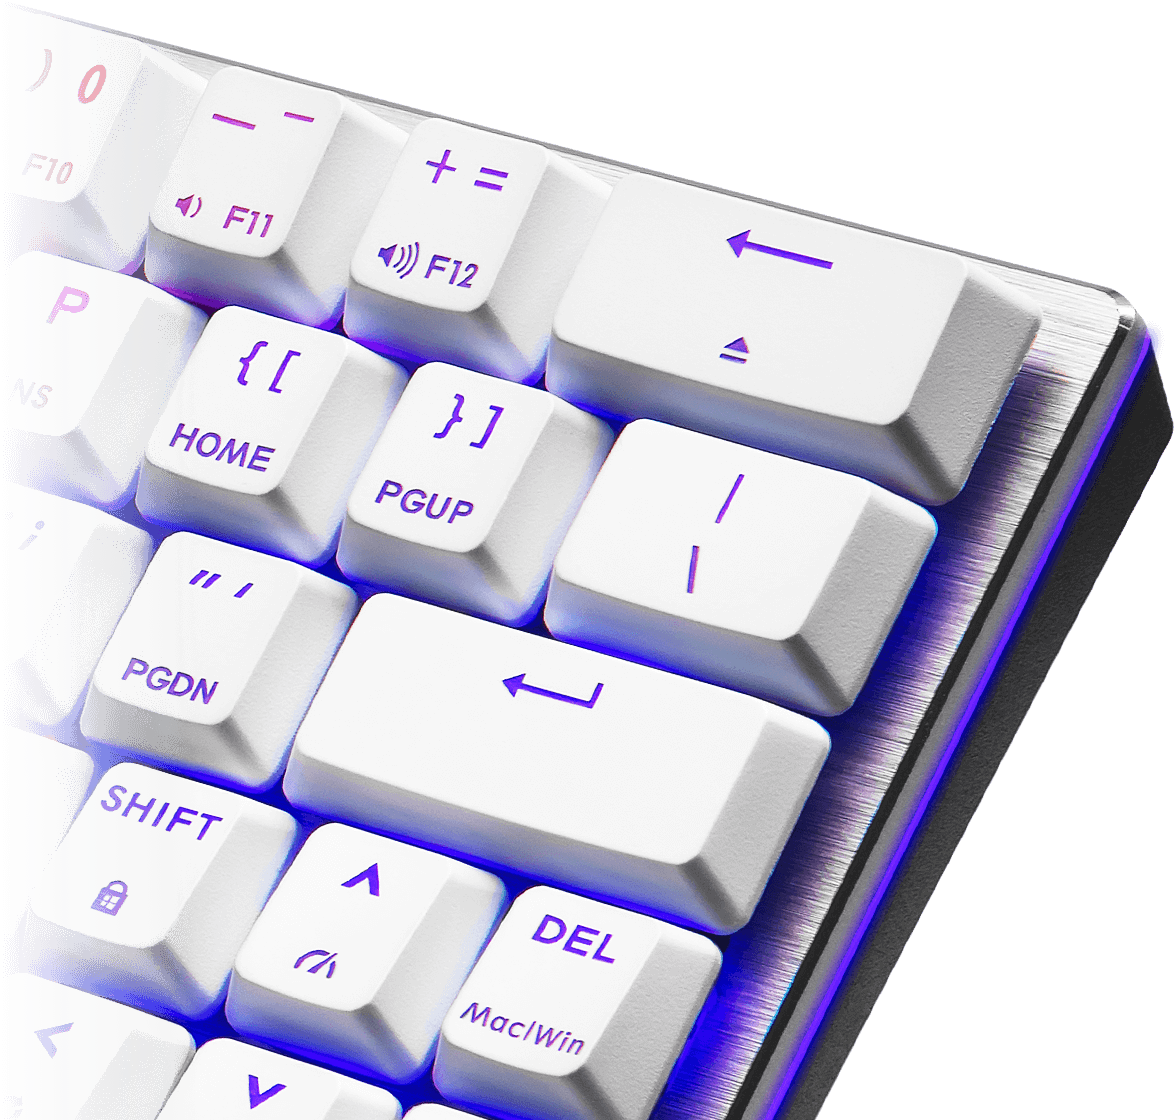 ...new, Improved Keycaps For Classic Typing Feel